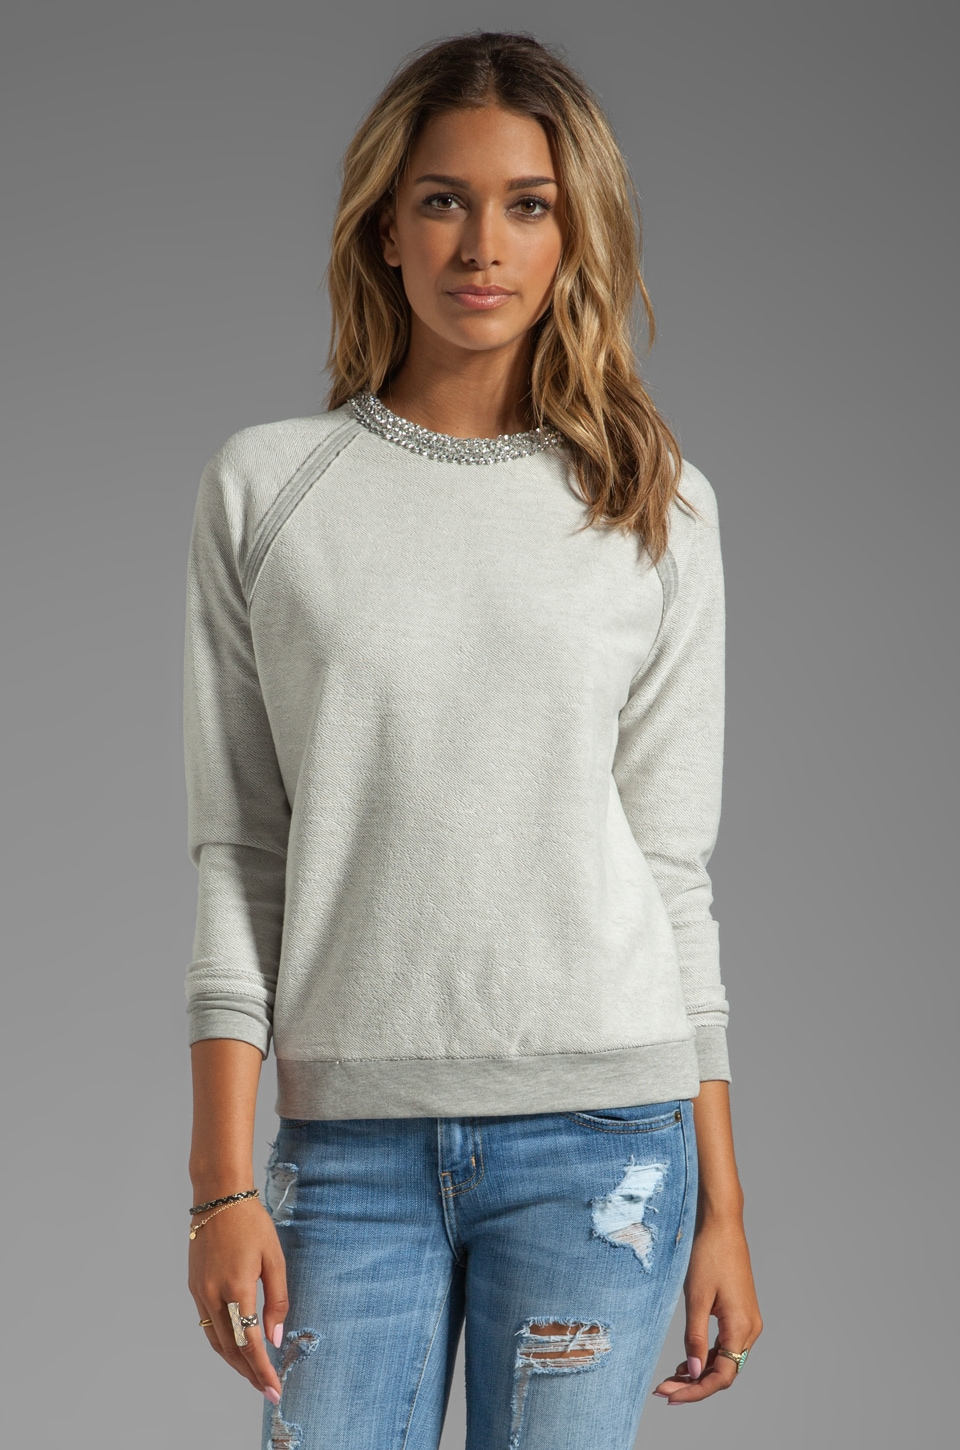 Haute Hippie Sweatshirt with Crystal Herringbone Neckline in Light Heather Grey